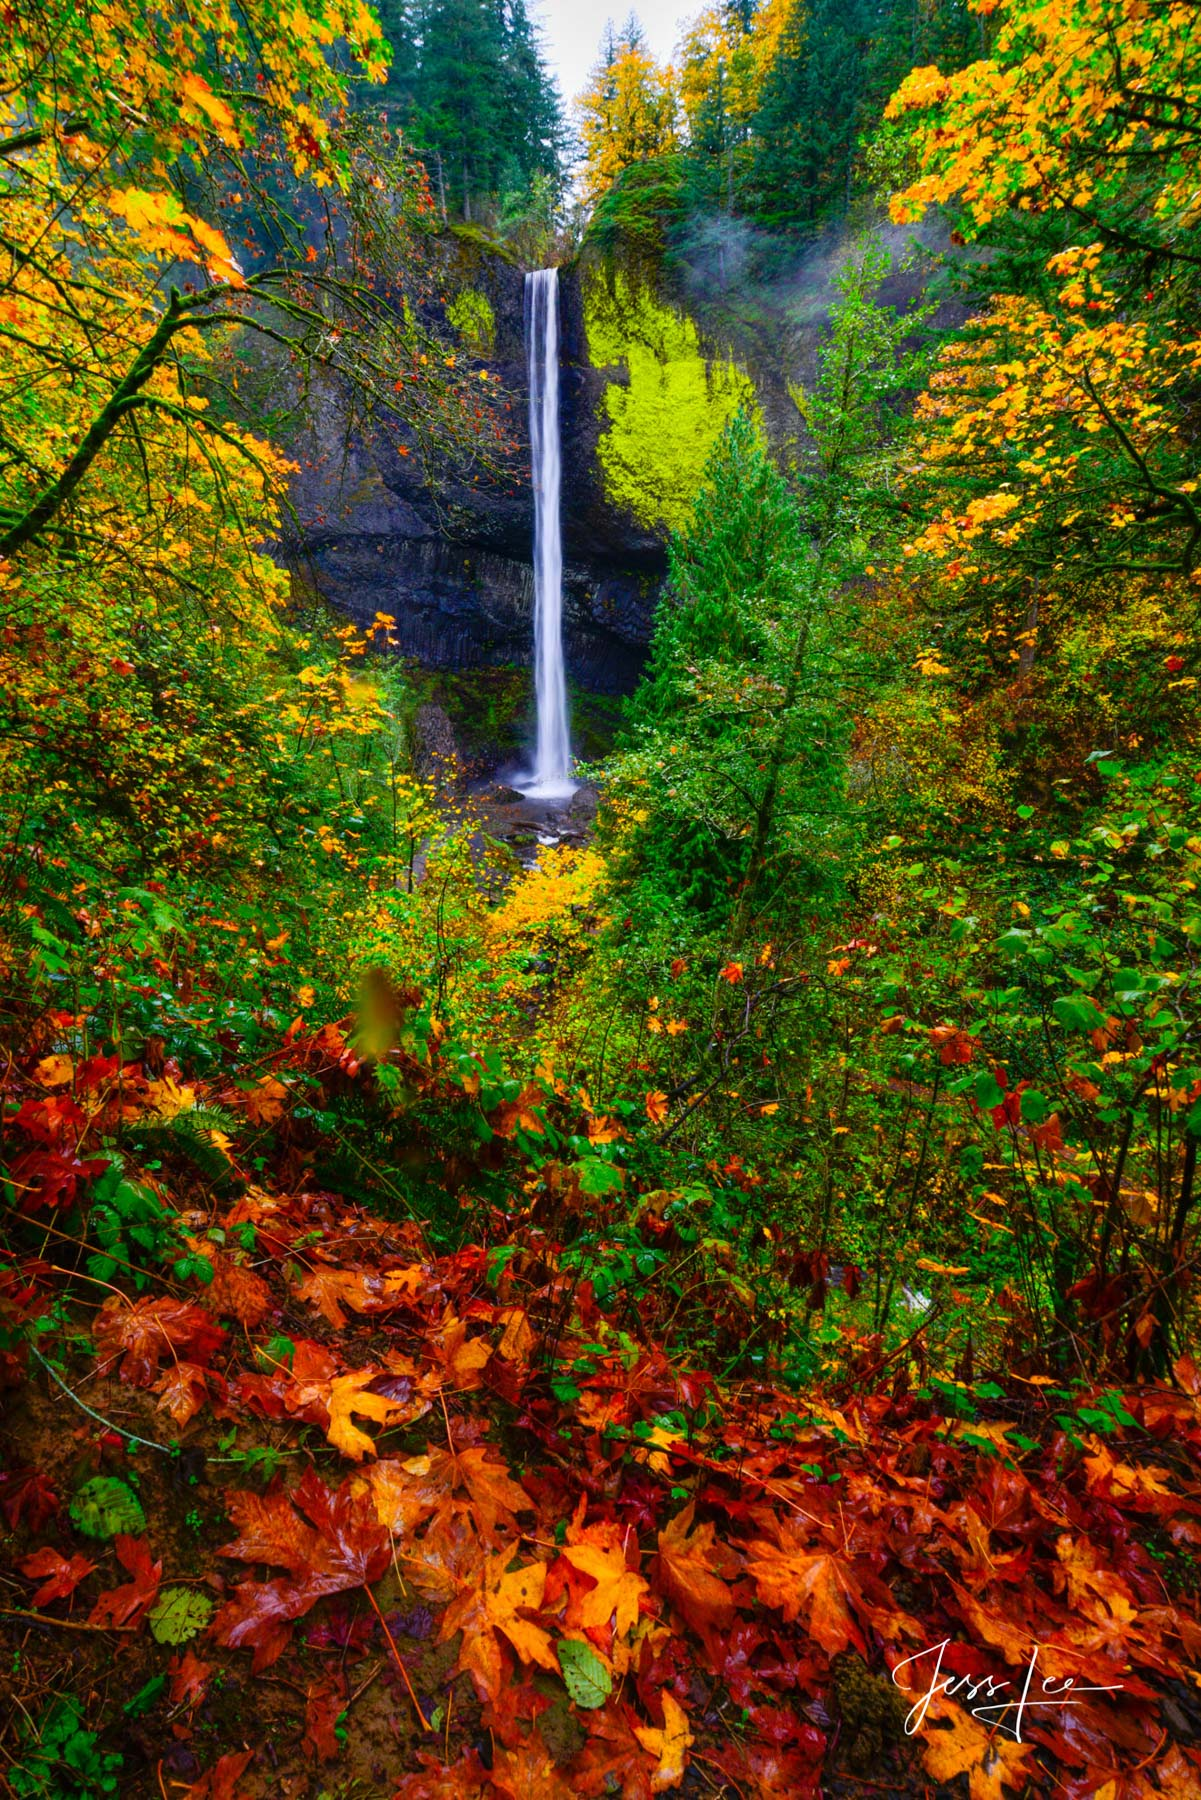 Limited Edition of 50 Exclusive high-resolution Museum Quality Fine Art Prints of waterfall Landscapes. Photos copyright © Jess...